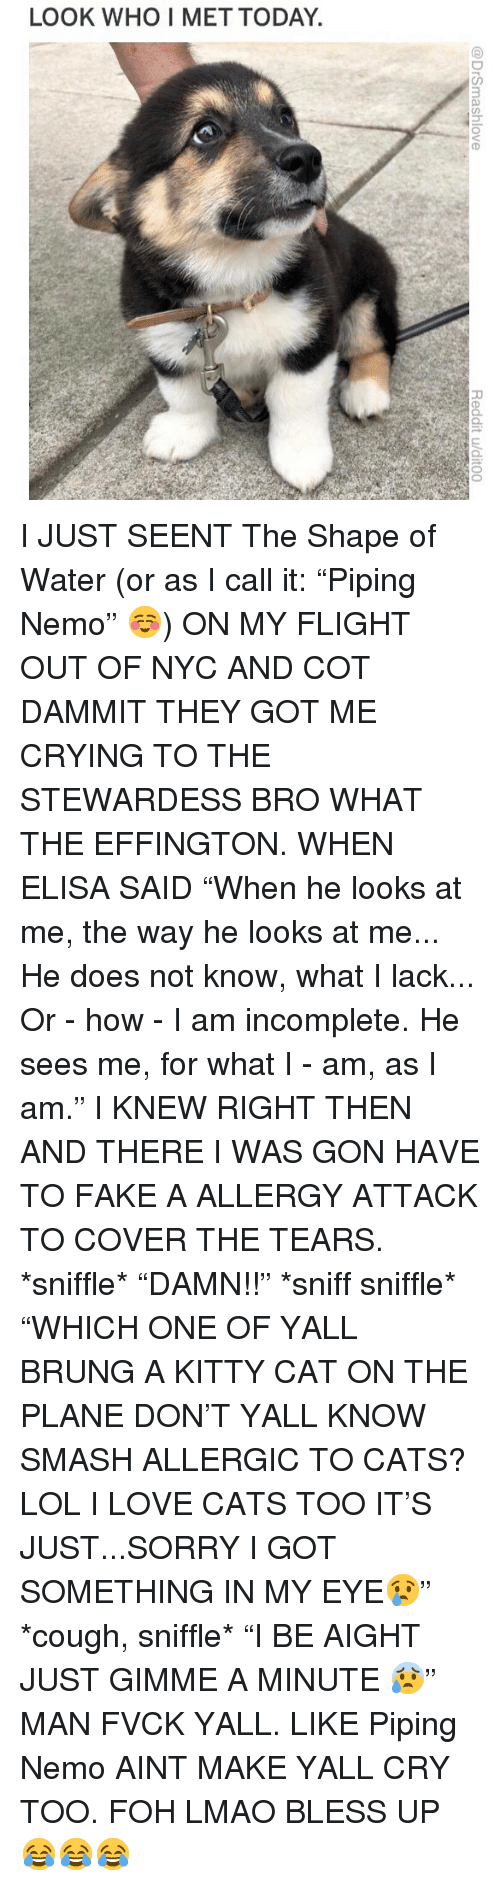 """Bless Up, Cats, and Crying: LOOK WHO I MET TODAY I JUST SEENT The Shape of Water (or as I call it: """"Piping Nemo"""" ☺️) ON MY FLIGHT OUT OF NYC AND COT DAMMIT THEY GOT ME CRYING TO THE STEWARDESS BRO WHAT THE EFFINGTON. WHEN ELISA SAID """"When he looks at me, the way he looks at me... He does not know, what I lack... Or - how - I am incomplete. He sees me, for what I - am, as I am."""" I KNEW RIGHT THEN AND THERE I WAS GON HAVE TO FAKE A ALLERGY ATTACK TO COVER THE TEARS. *sniffle* """"DAMN!!"""" *sniff sniffle* """"WHICH ONE OF YALL BRUNG A KITTY CAT ON THE PLANE DON'T YALL KNOW SMASH ALLERGIC TO CATS? LOL I LOVE CATS TOO IT'S JUST...SORRY I GOT SOMETHING IN MY EYE😢"""" *cough, sniffle* """"I BE AIGHT JUST GIMME A MINUTE 😰"""" MAN FVCK YALL. LIKE Piping Nemo AINT MAKE YALL CRY TOO. FOH LMAO BLESS UP 😂😂😂"""